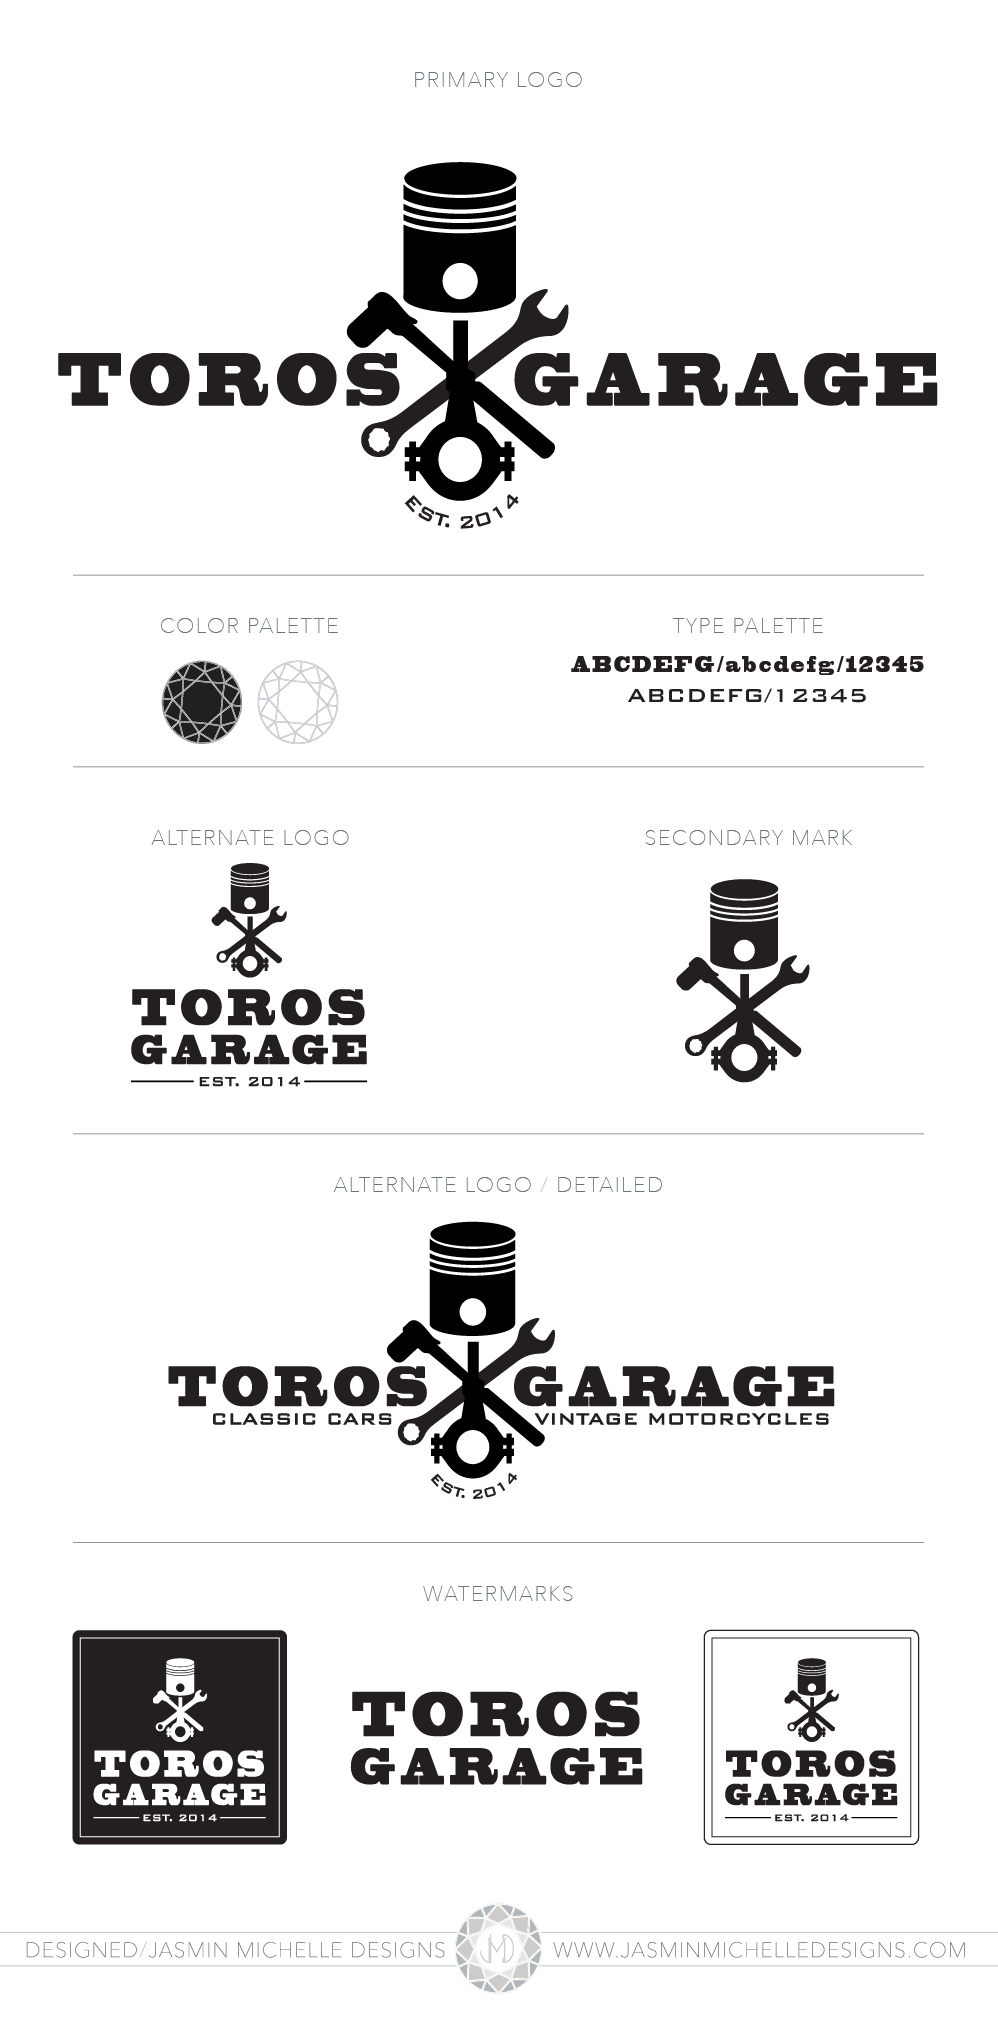 jmdimage_website_folio_casestudy_torosgarage_torosgarage